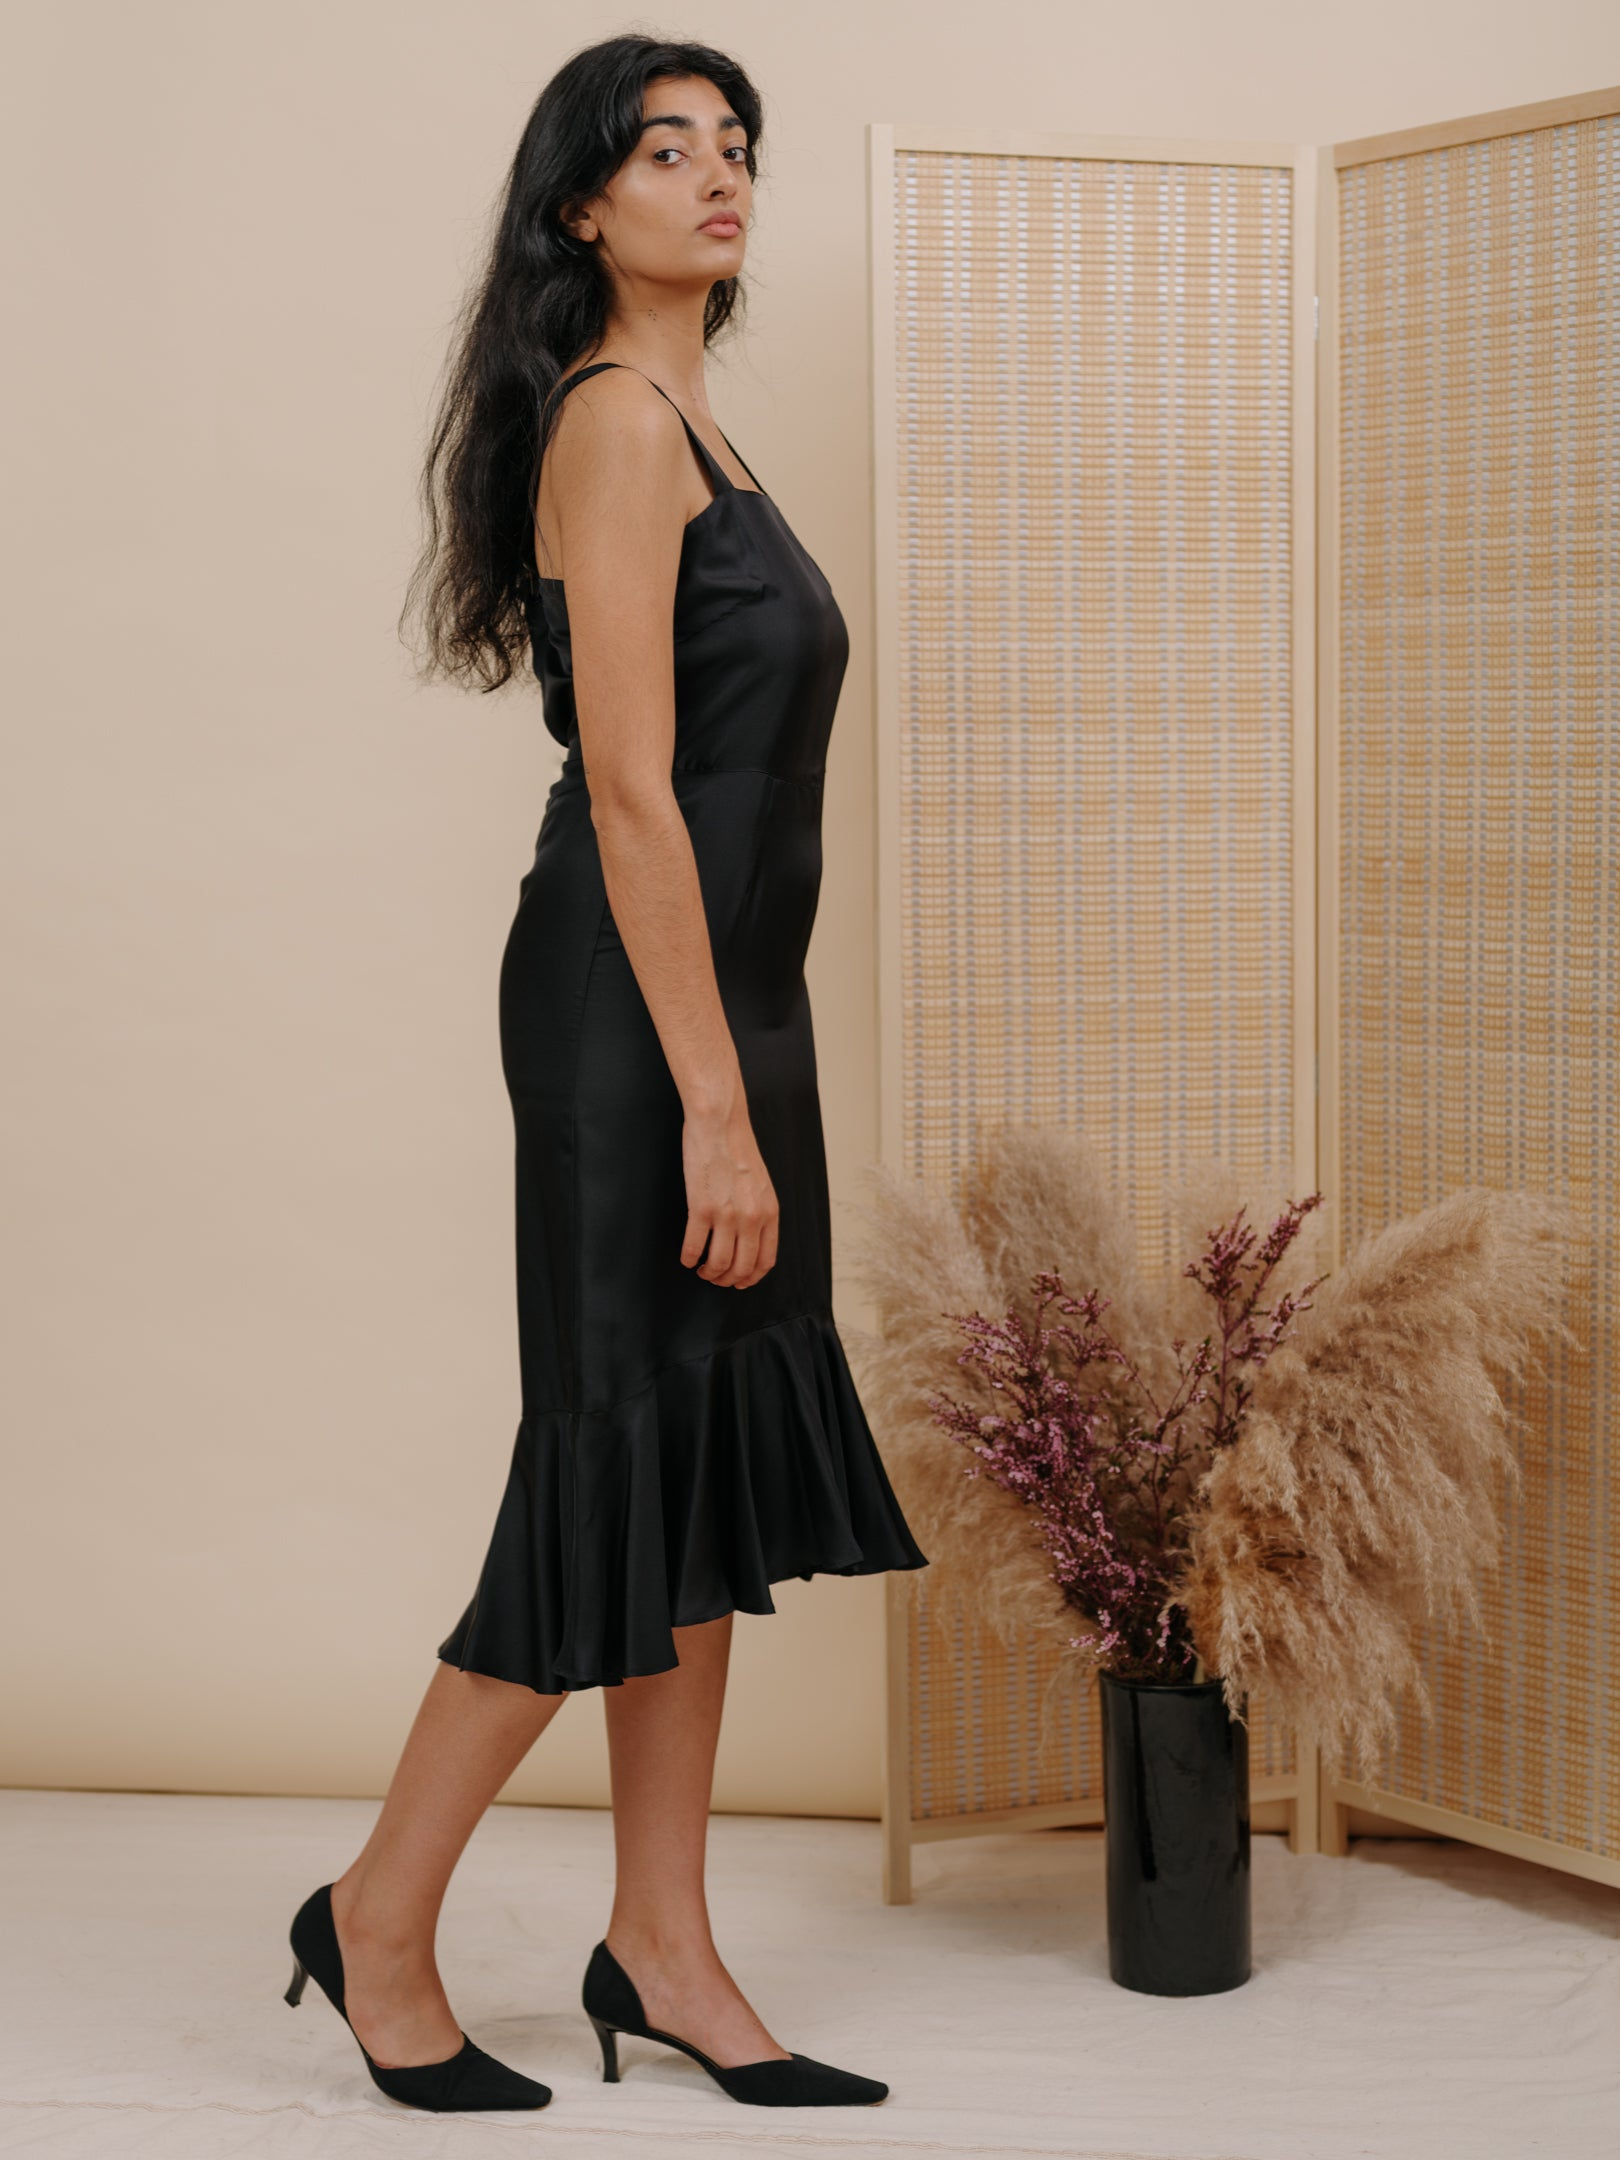 Flo Dress in Black Silk